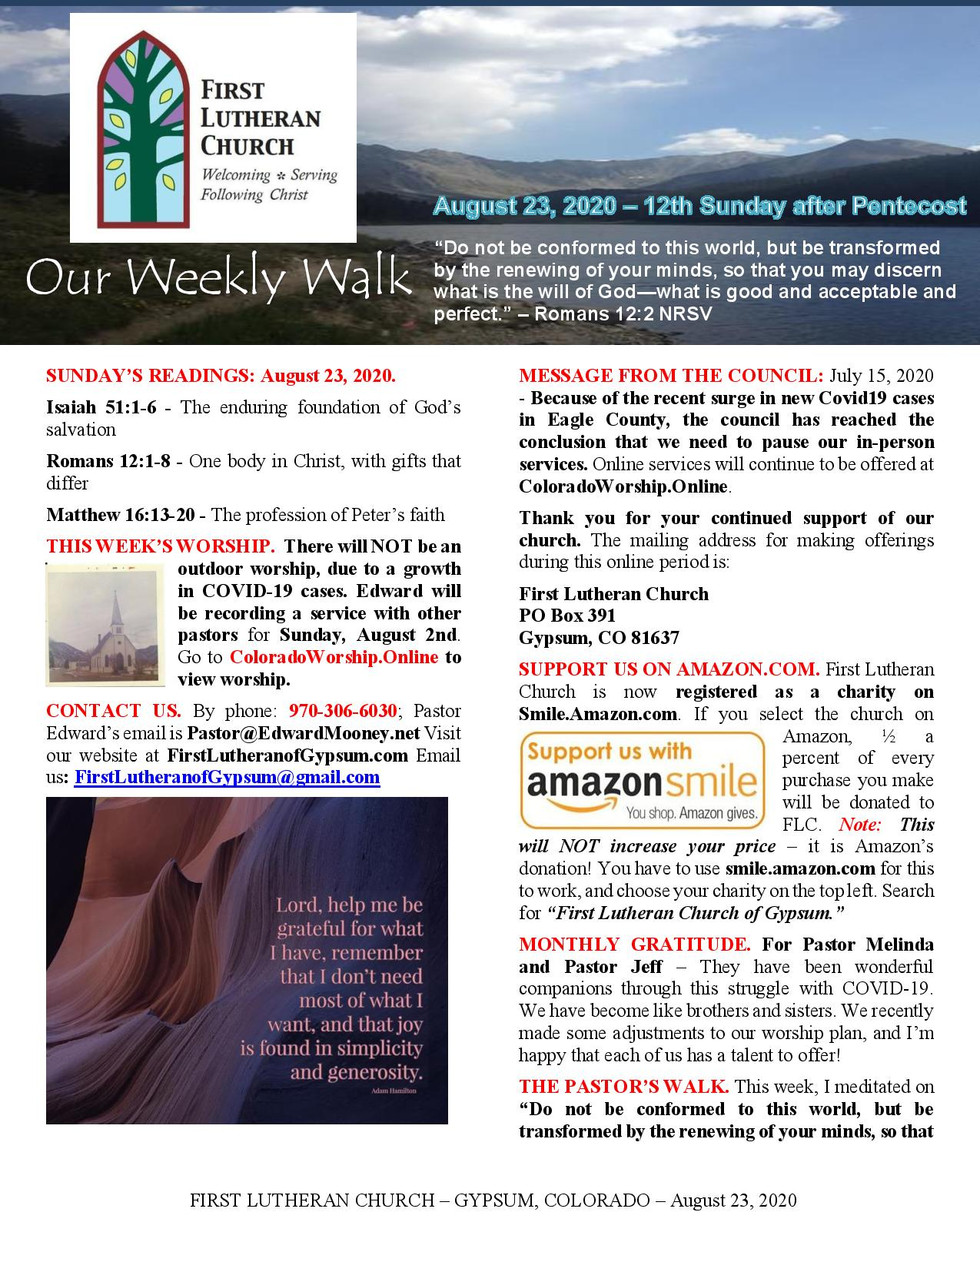 Newsletter, August 23, 2020, page 1